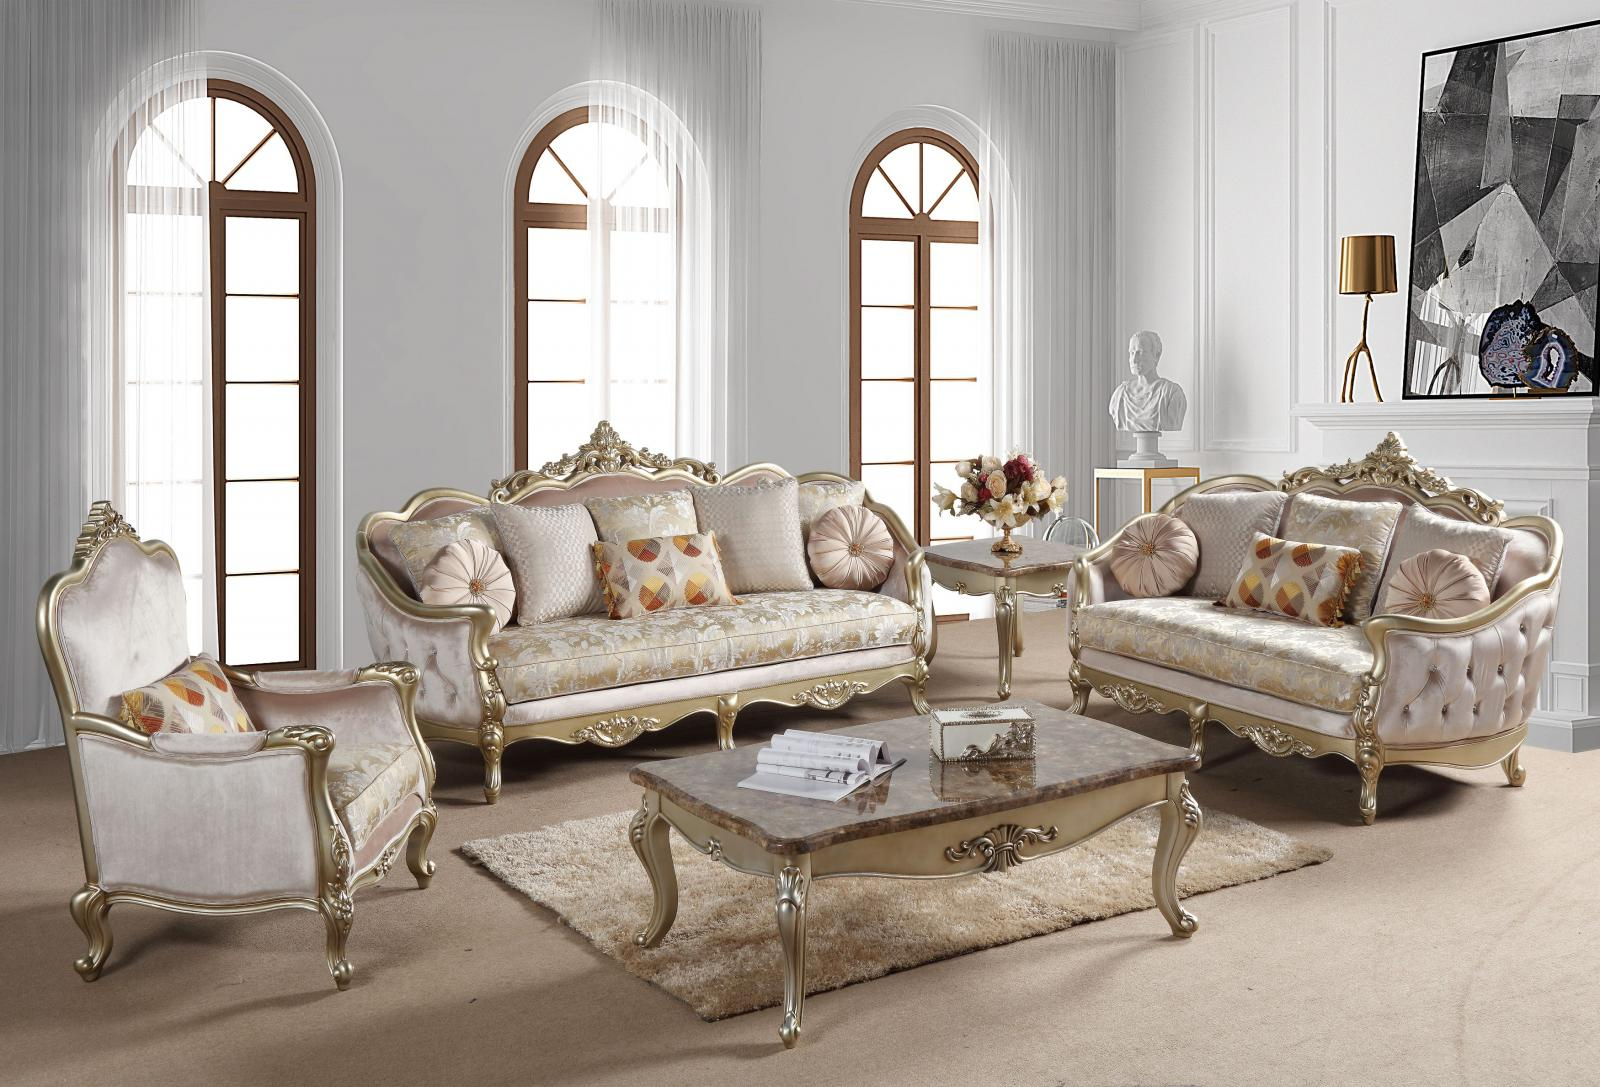 Traditional Champagne Fabric and Fabric, Wood Sofa Loveseat and Chair Set 3 pcs Diana by Cosmos Furniture